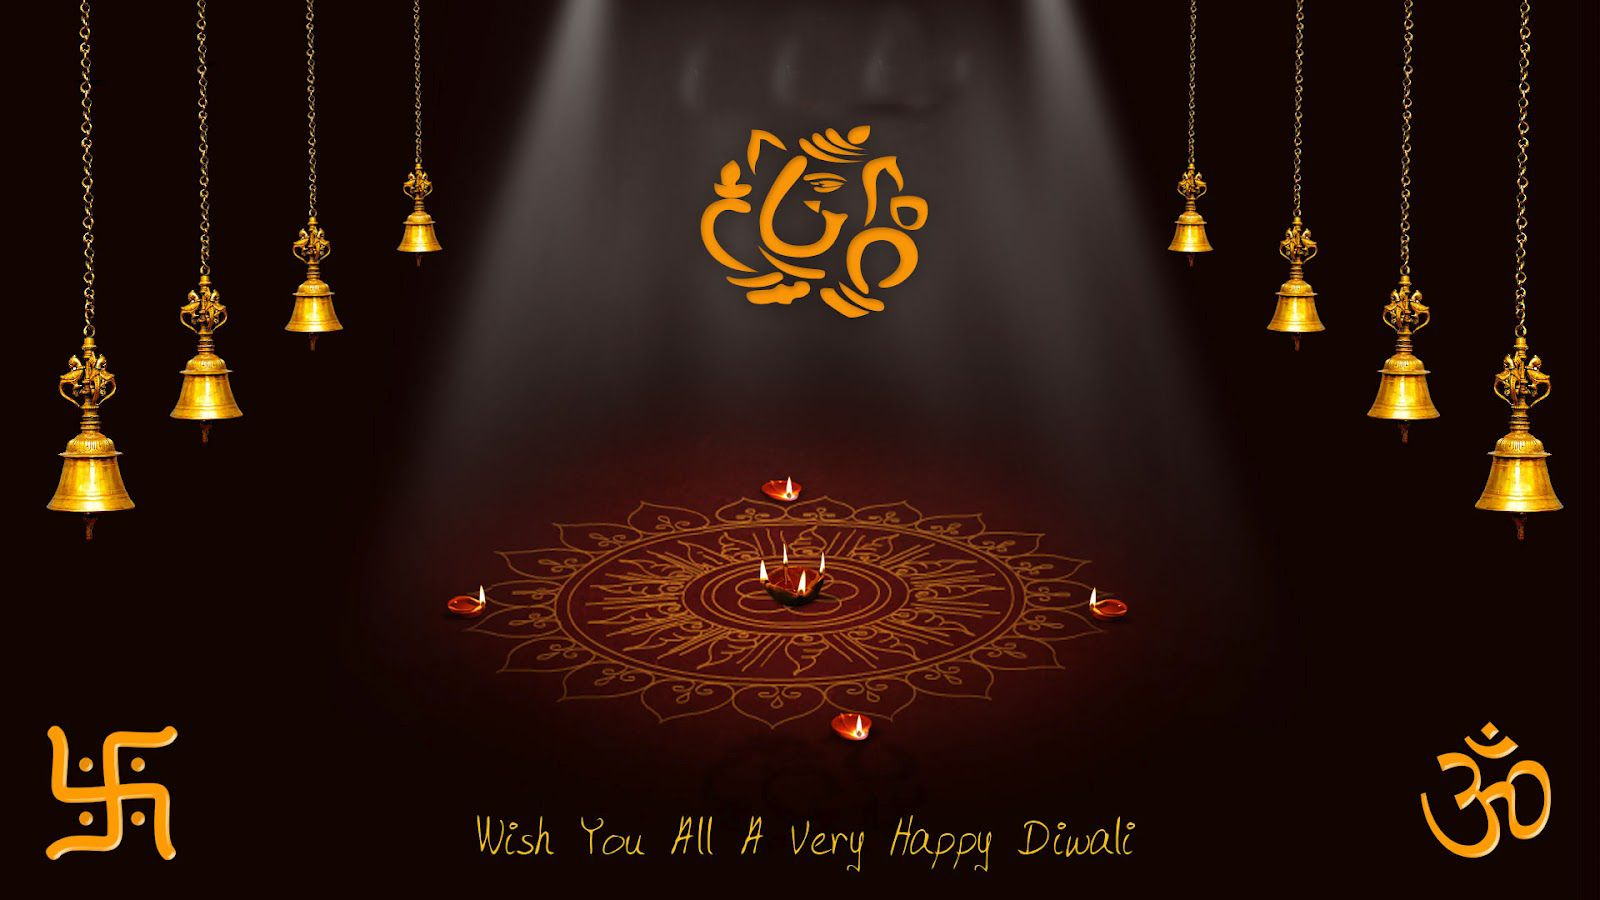 Happy diwali 2015 download free new sms images and greeting cards diwali happy diwali 2015 download free new sms images and greeting cards kristyandbryce Images